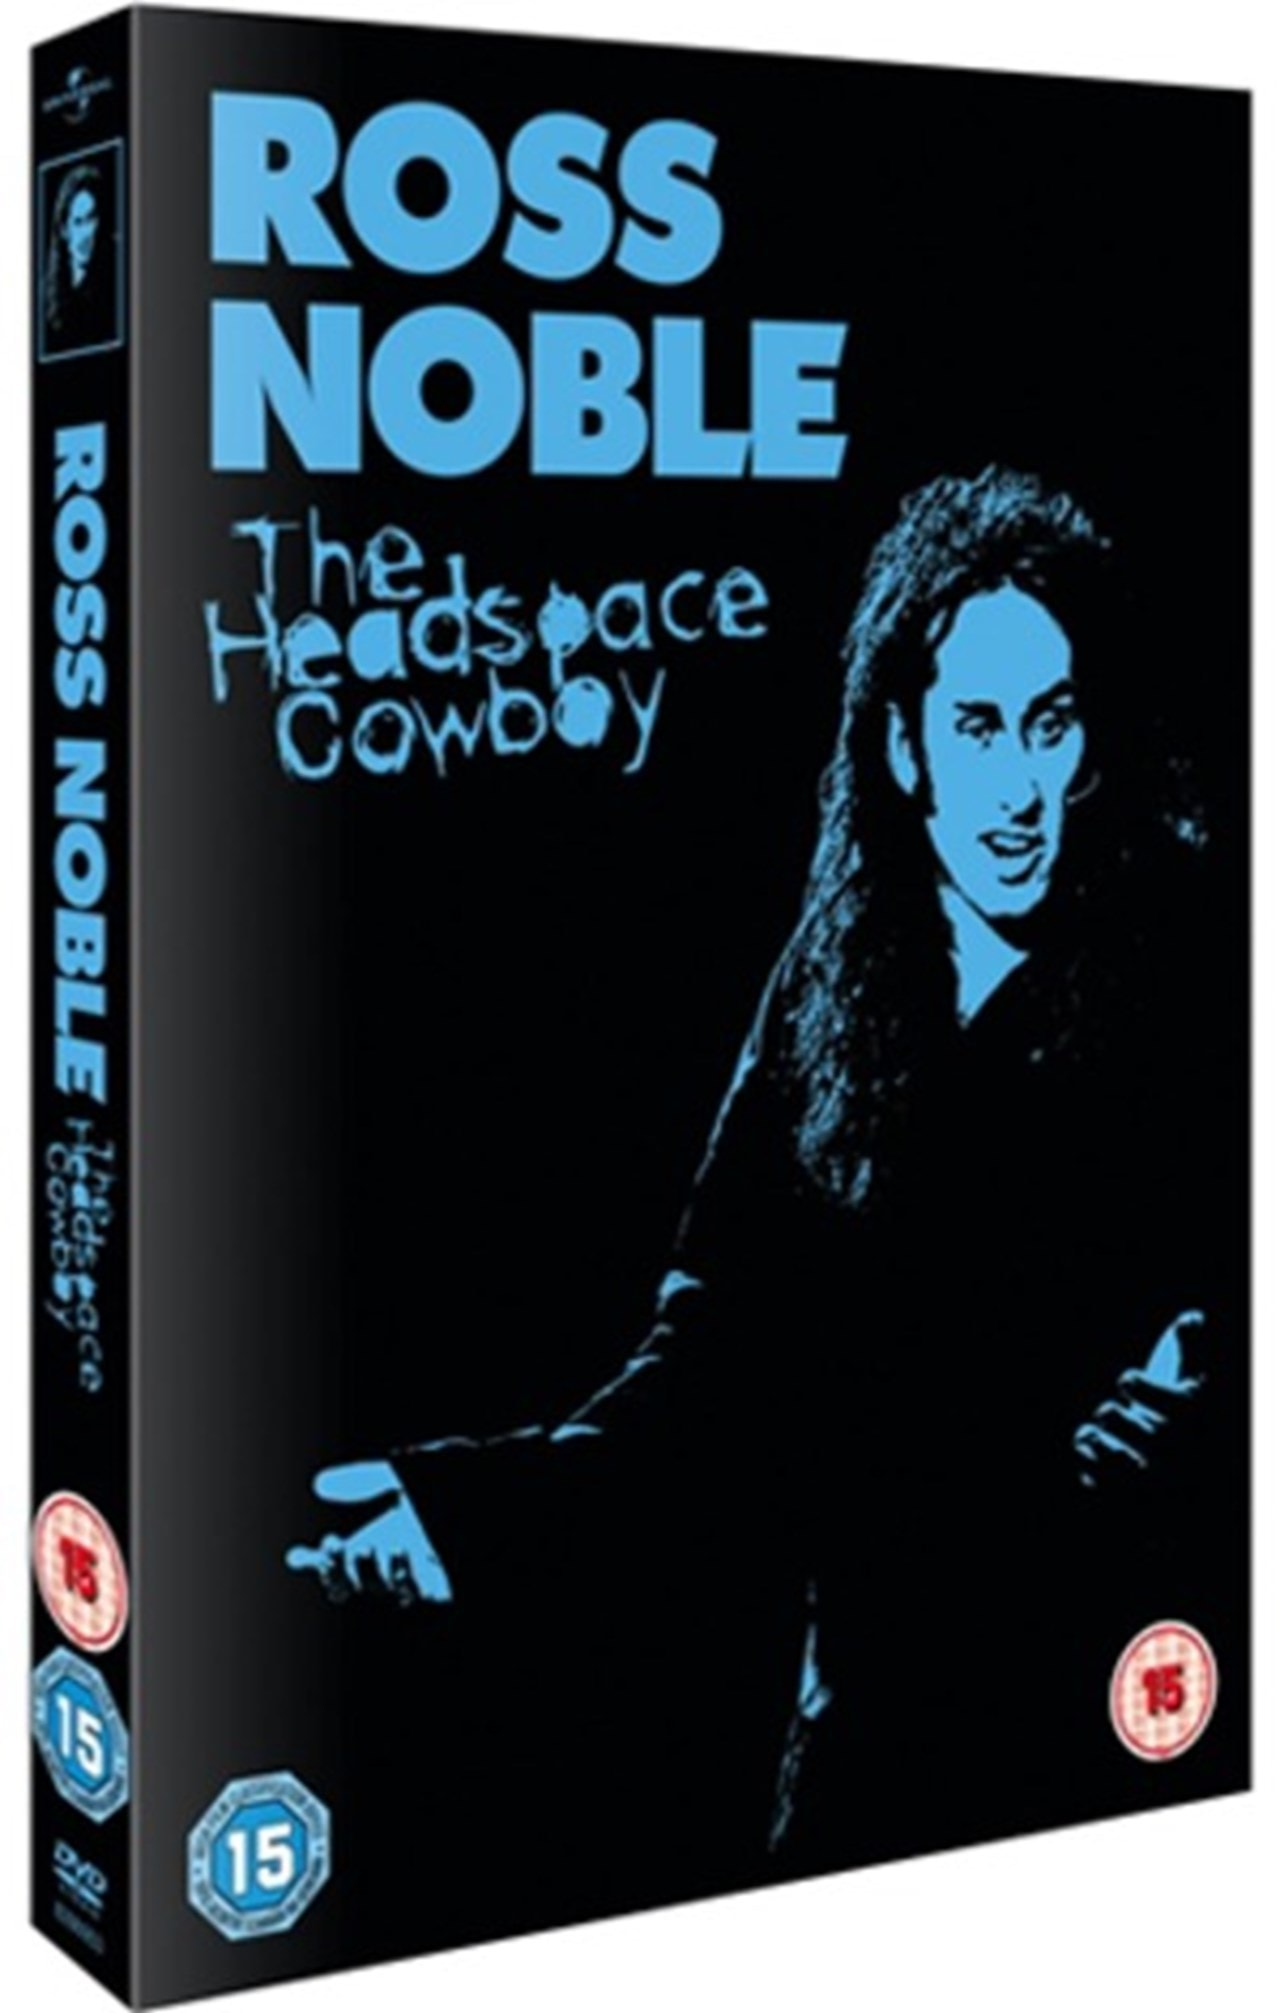 Ross Noble: Headspace Cowboy - 1